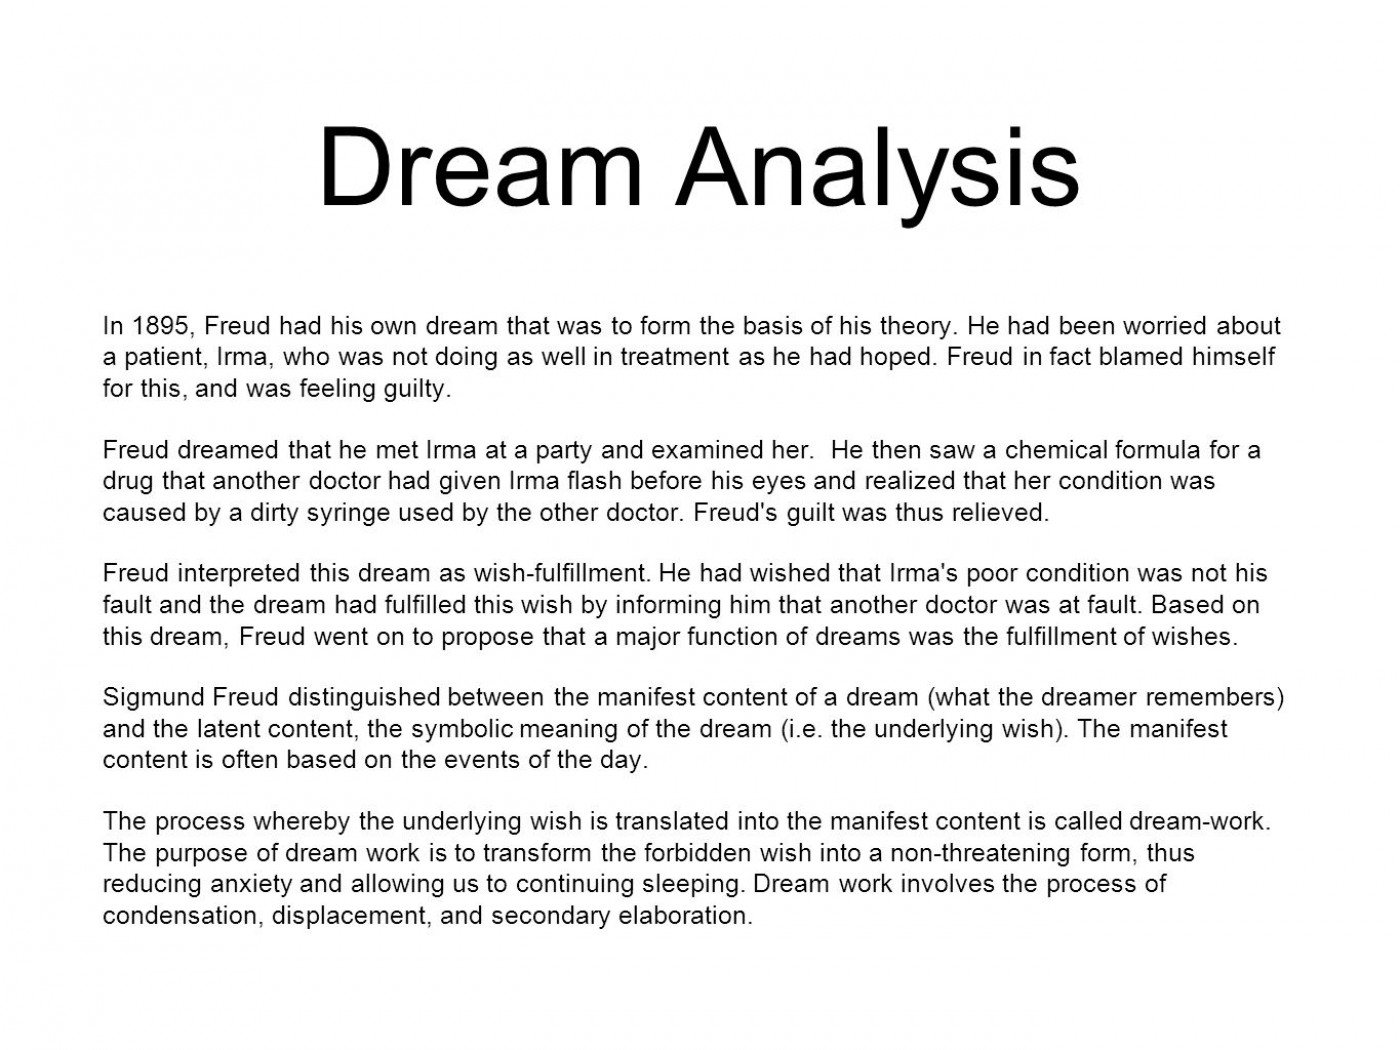 016 Research Paper Dreamanalysis Psychology Topics On Rare Dreams Papers 1400